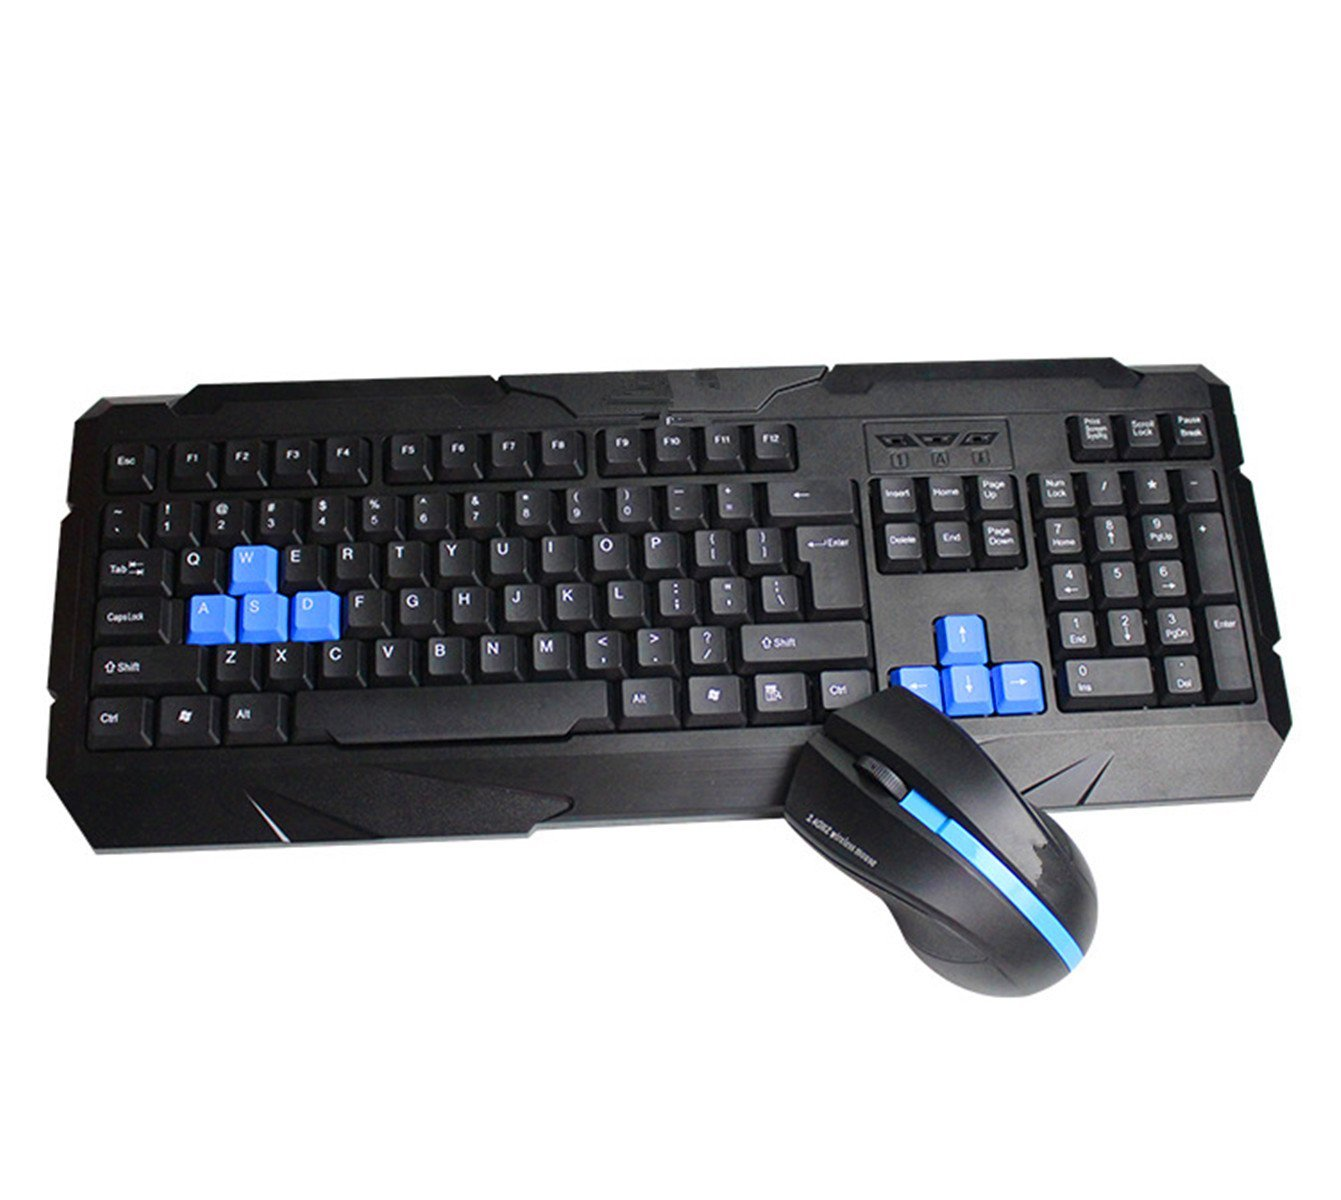 4a206701173 Get Quotations · ircoo Gaming Mouse Gaming Keyboard Combo LED Backlit  Keyboard and Mouse Set Gaming Mouse and Keyboard